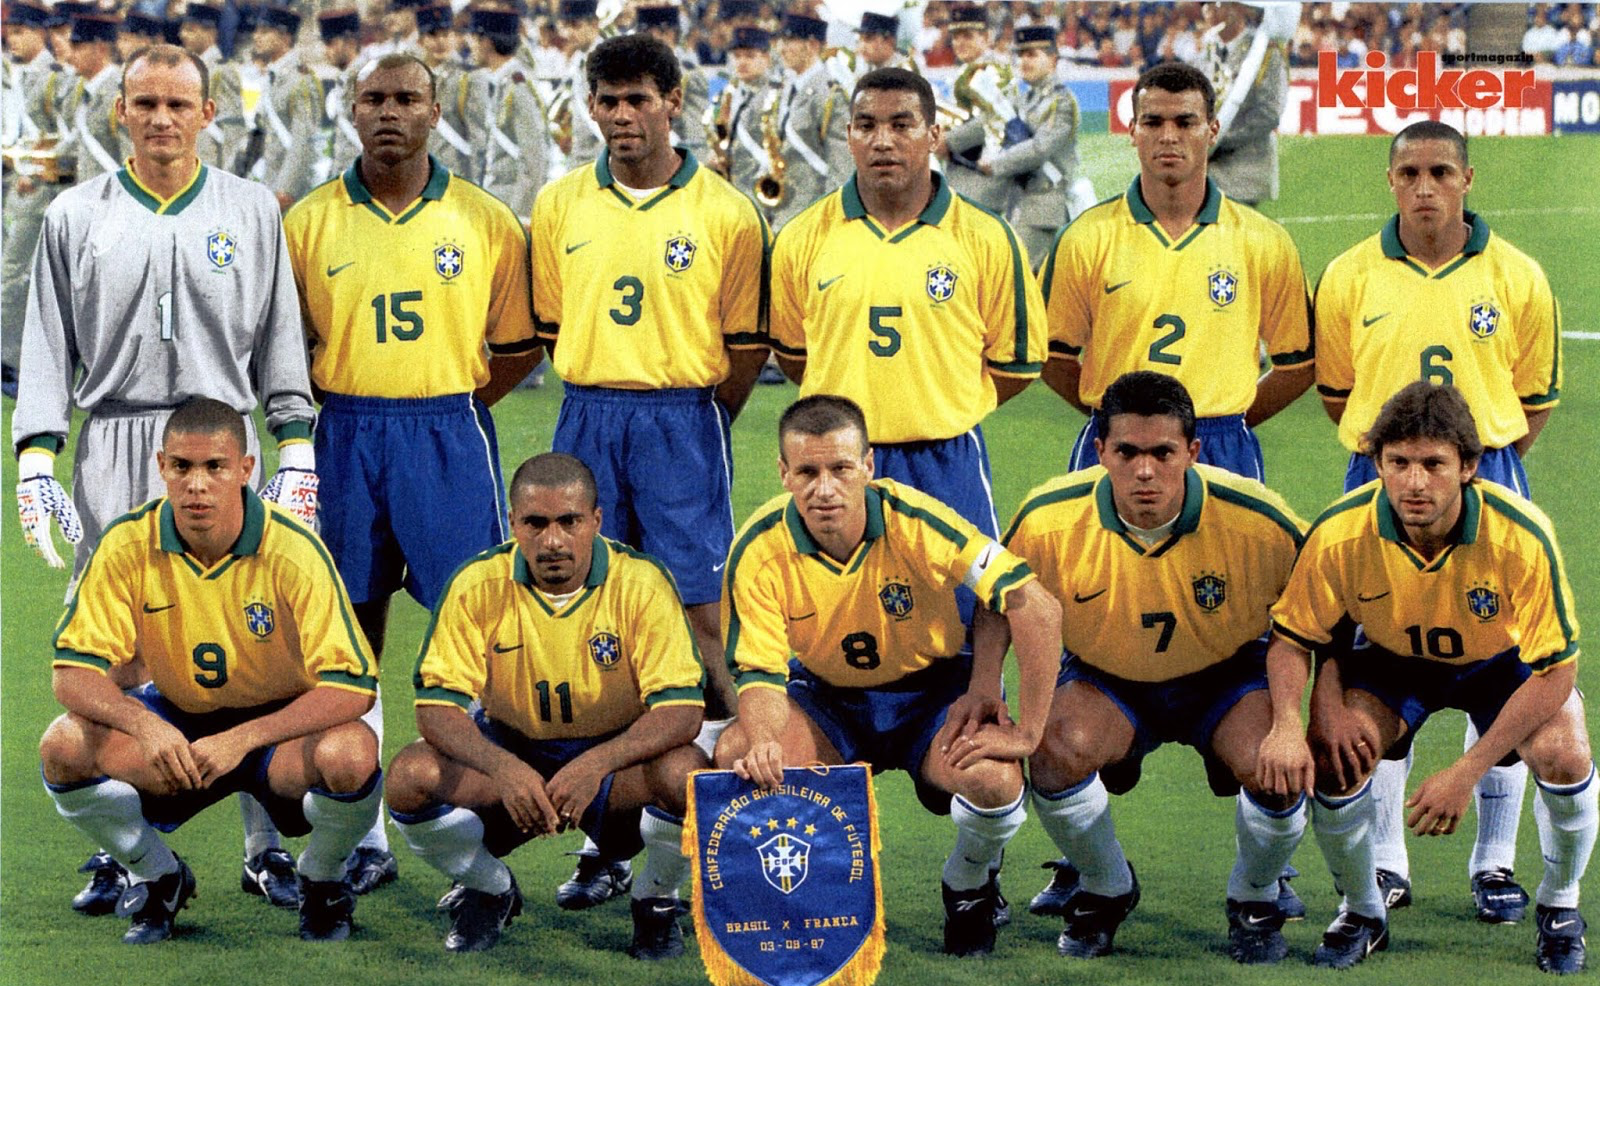 Kicker-WM-1998 Brazil 1997.06.3.Lyon,France.Tournoi de France-France v Brazil 1-1 Big1.png